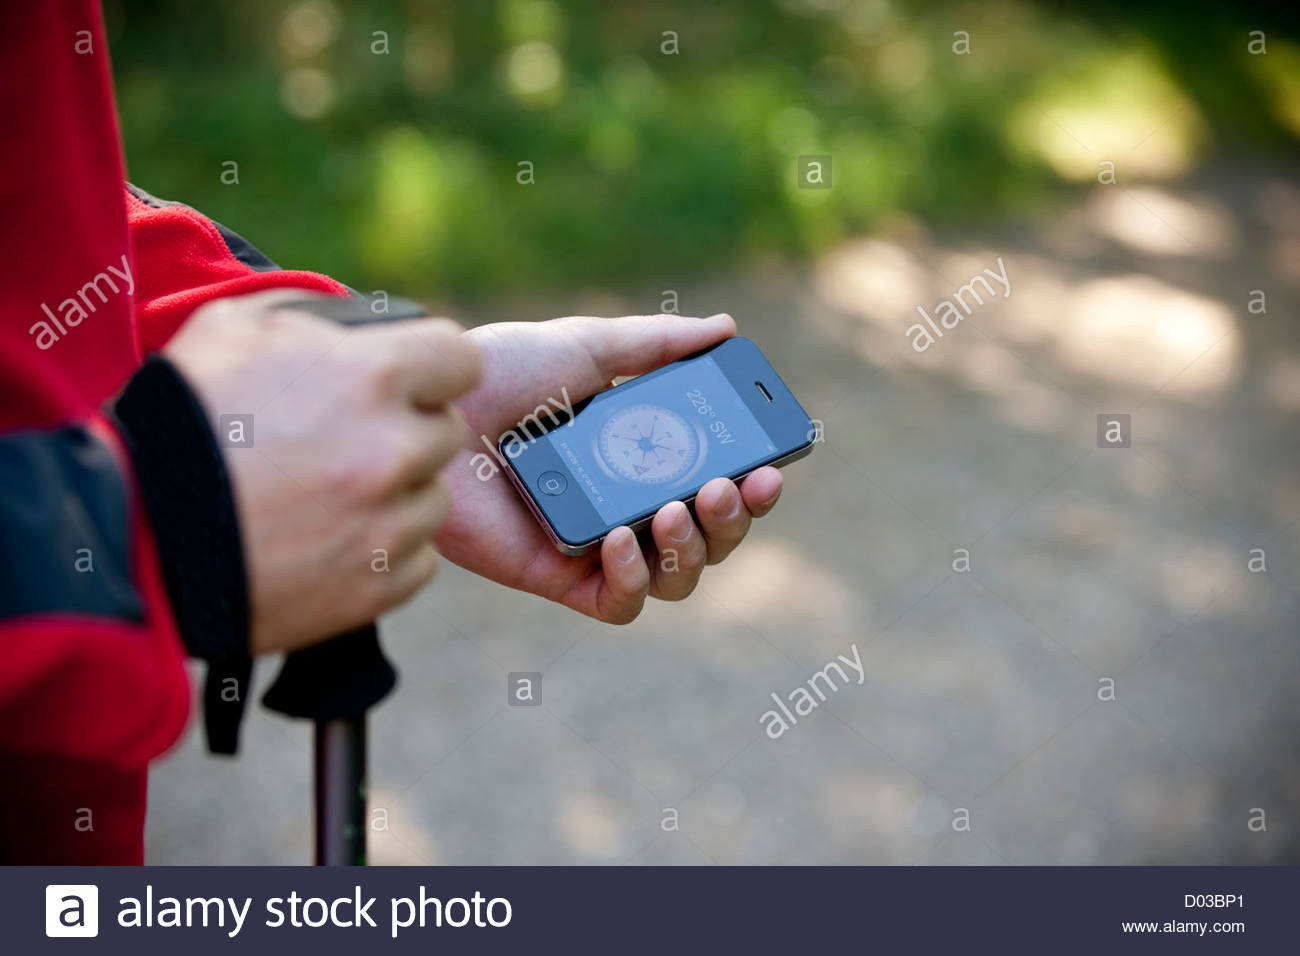 A man holding a smartphone with a compass application, close up - Stock Image